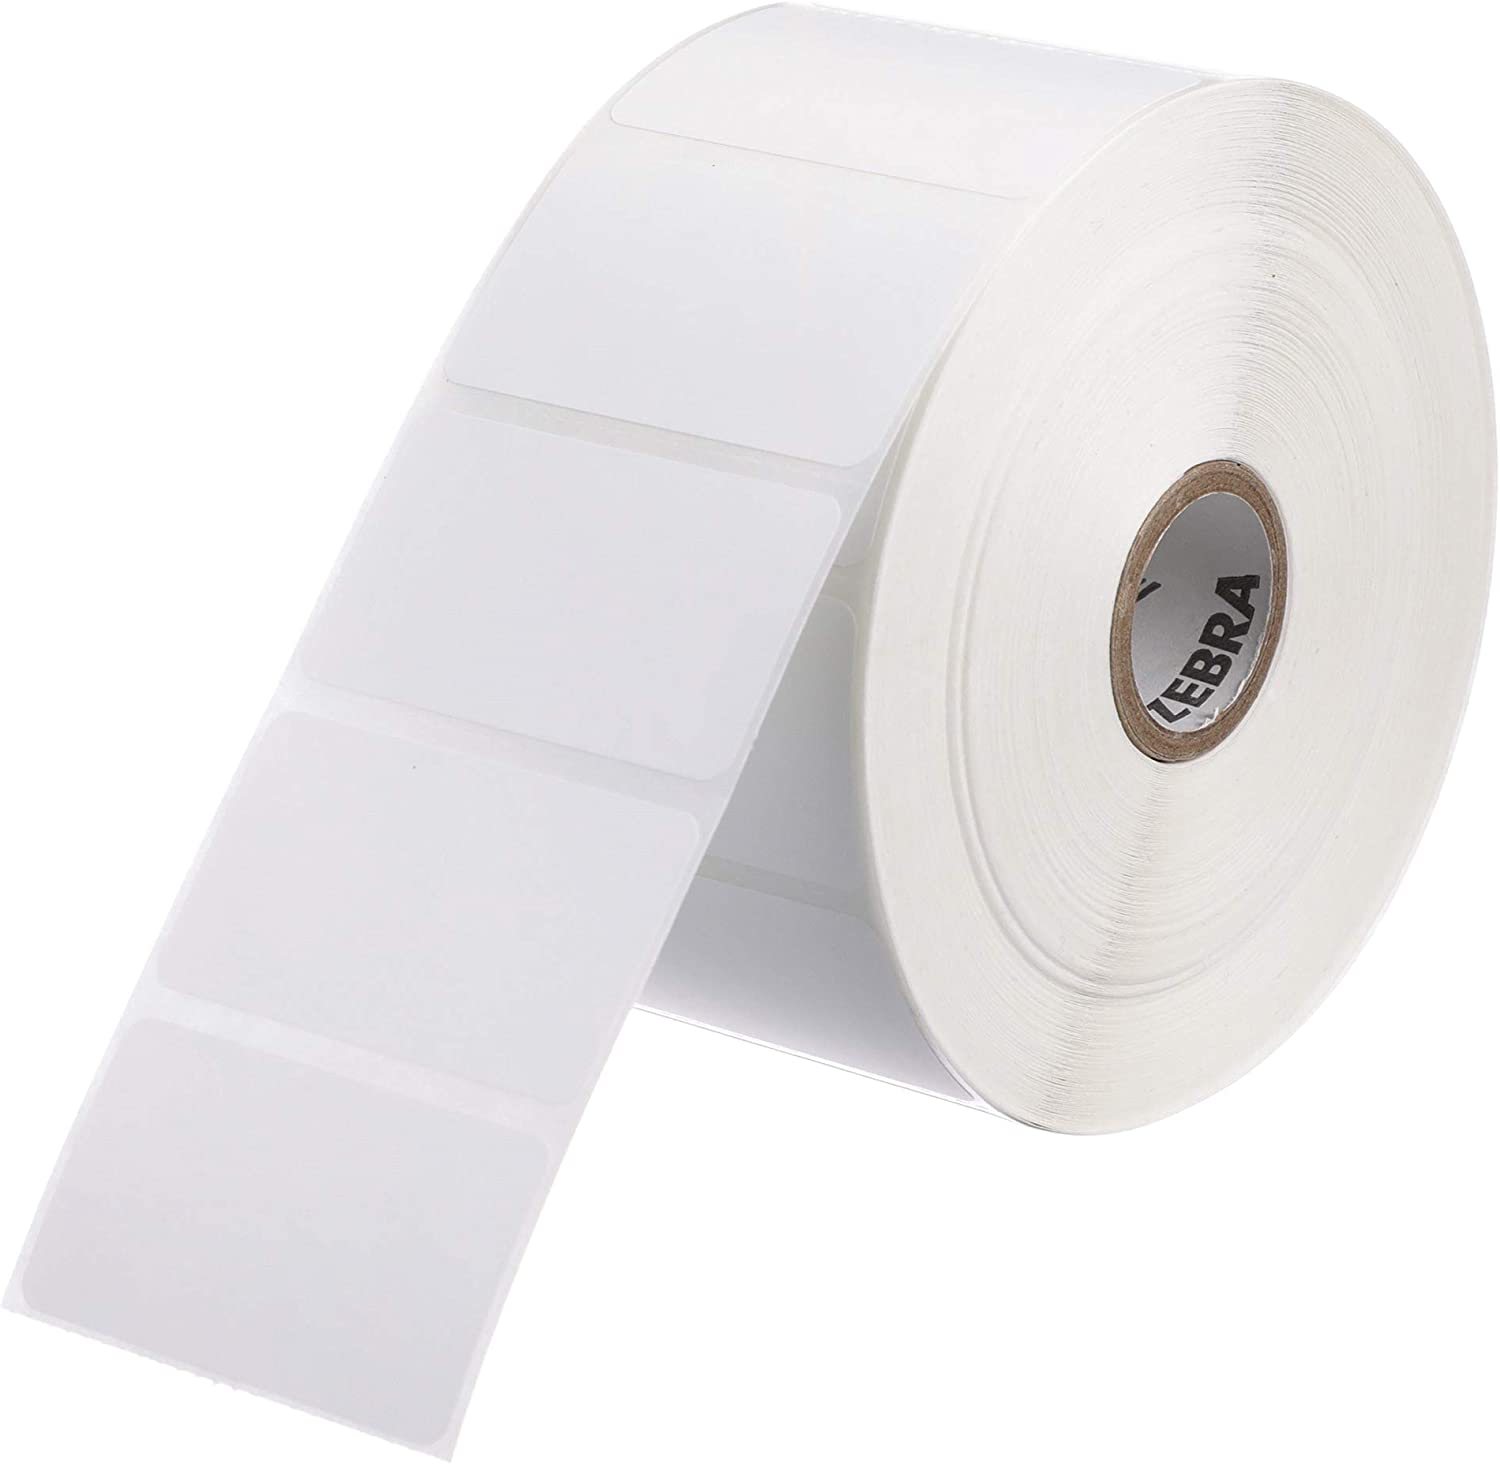 """1 ZEBRA 2.25 x 1.25 WHITE Direct Thermal Labels 3/"""" CORE - Roll of 4000 ZT410"""